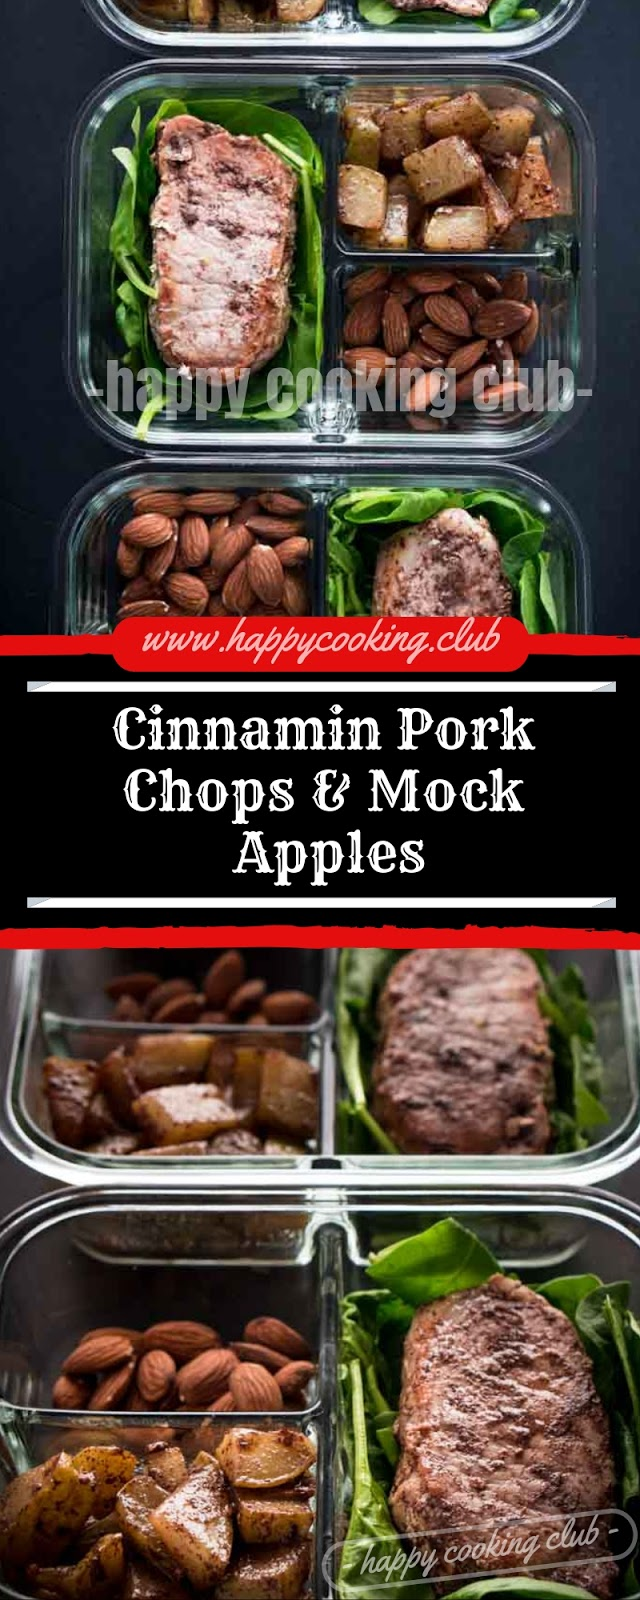 Cinnamin Pork Chops & Mock Apples